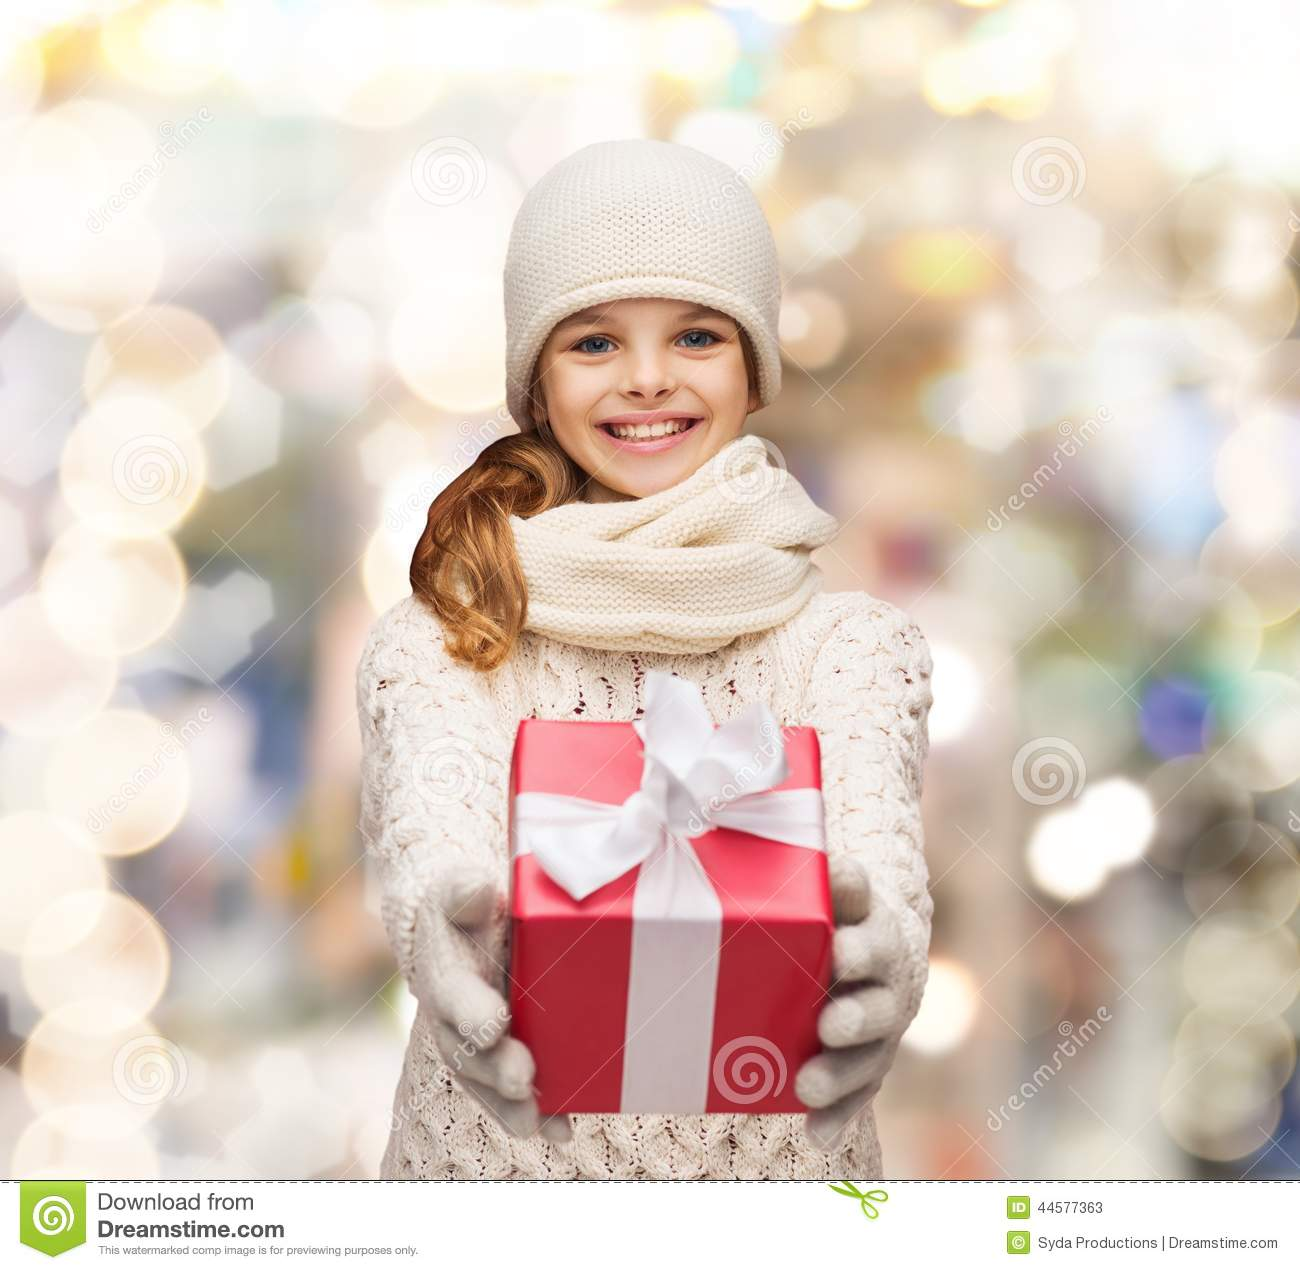 Dreaming girl in winter clothes with gift box